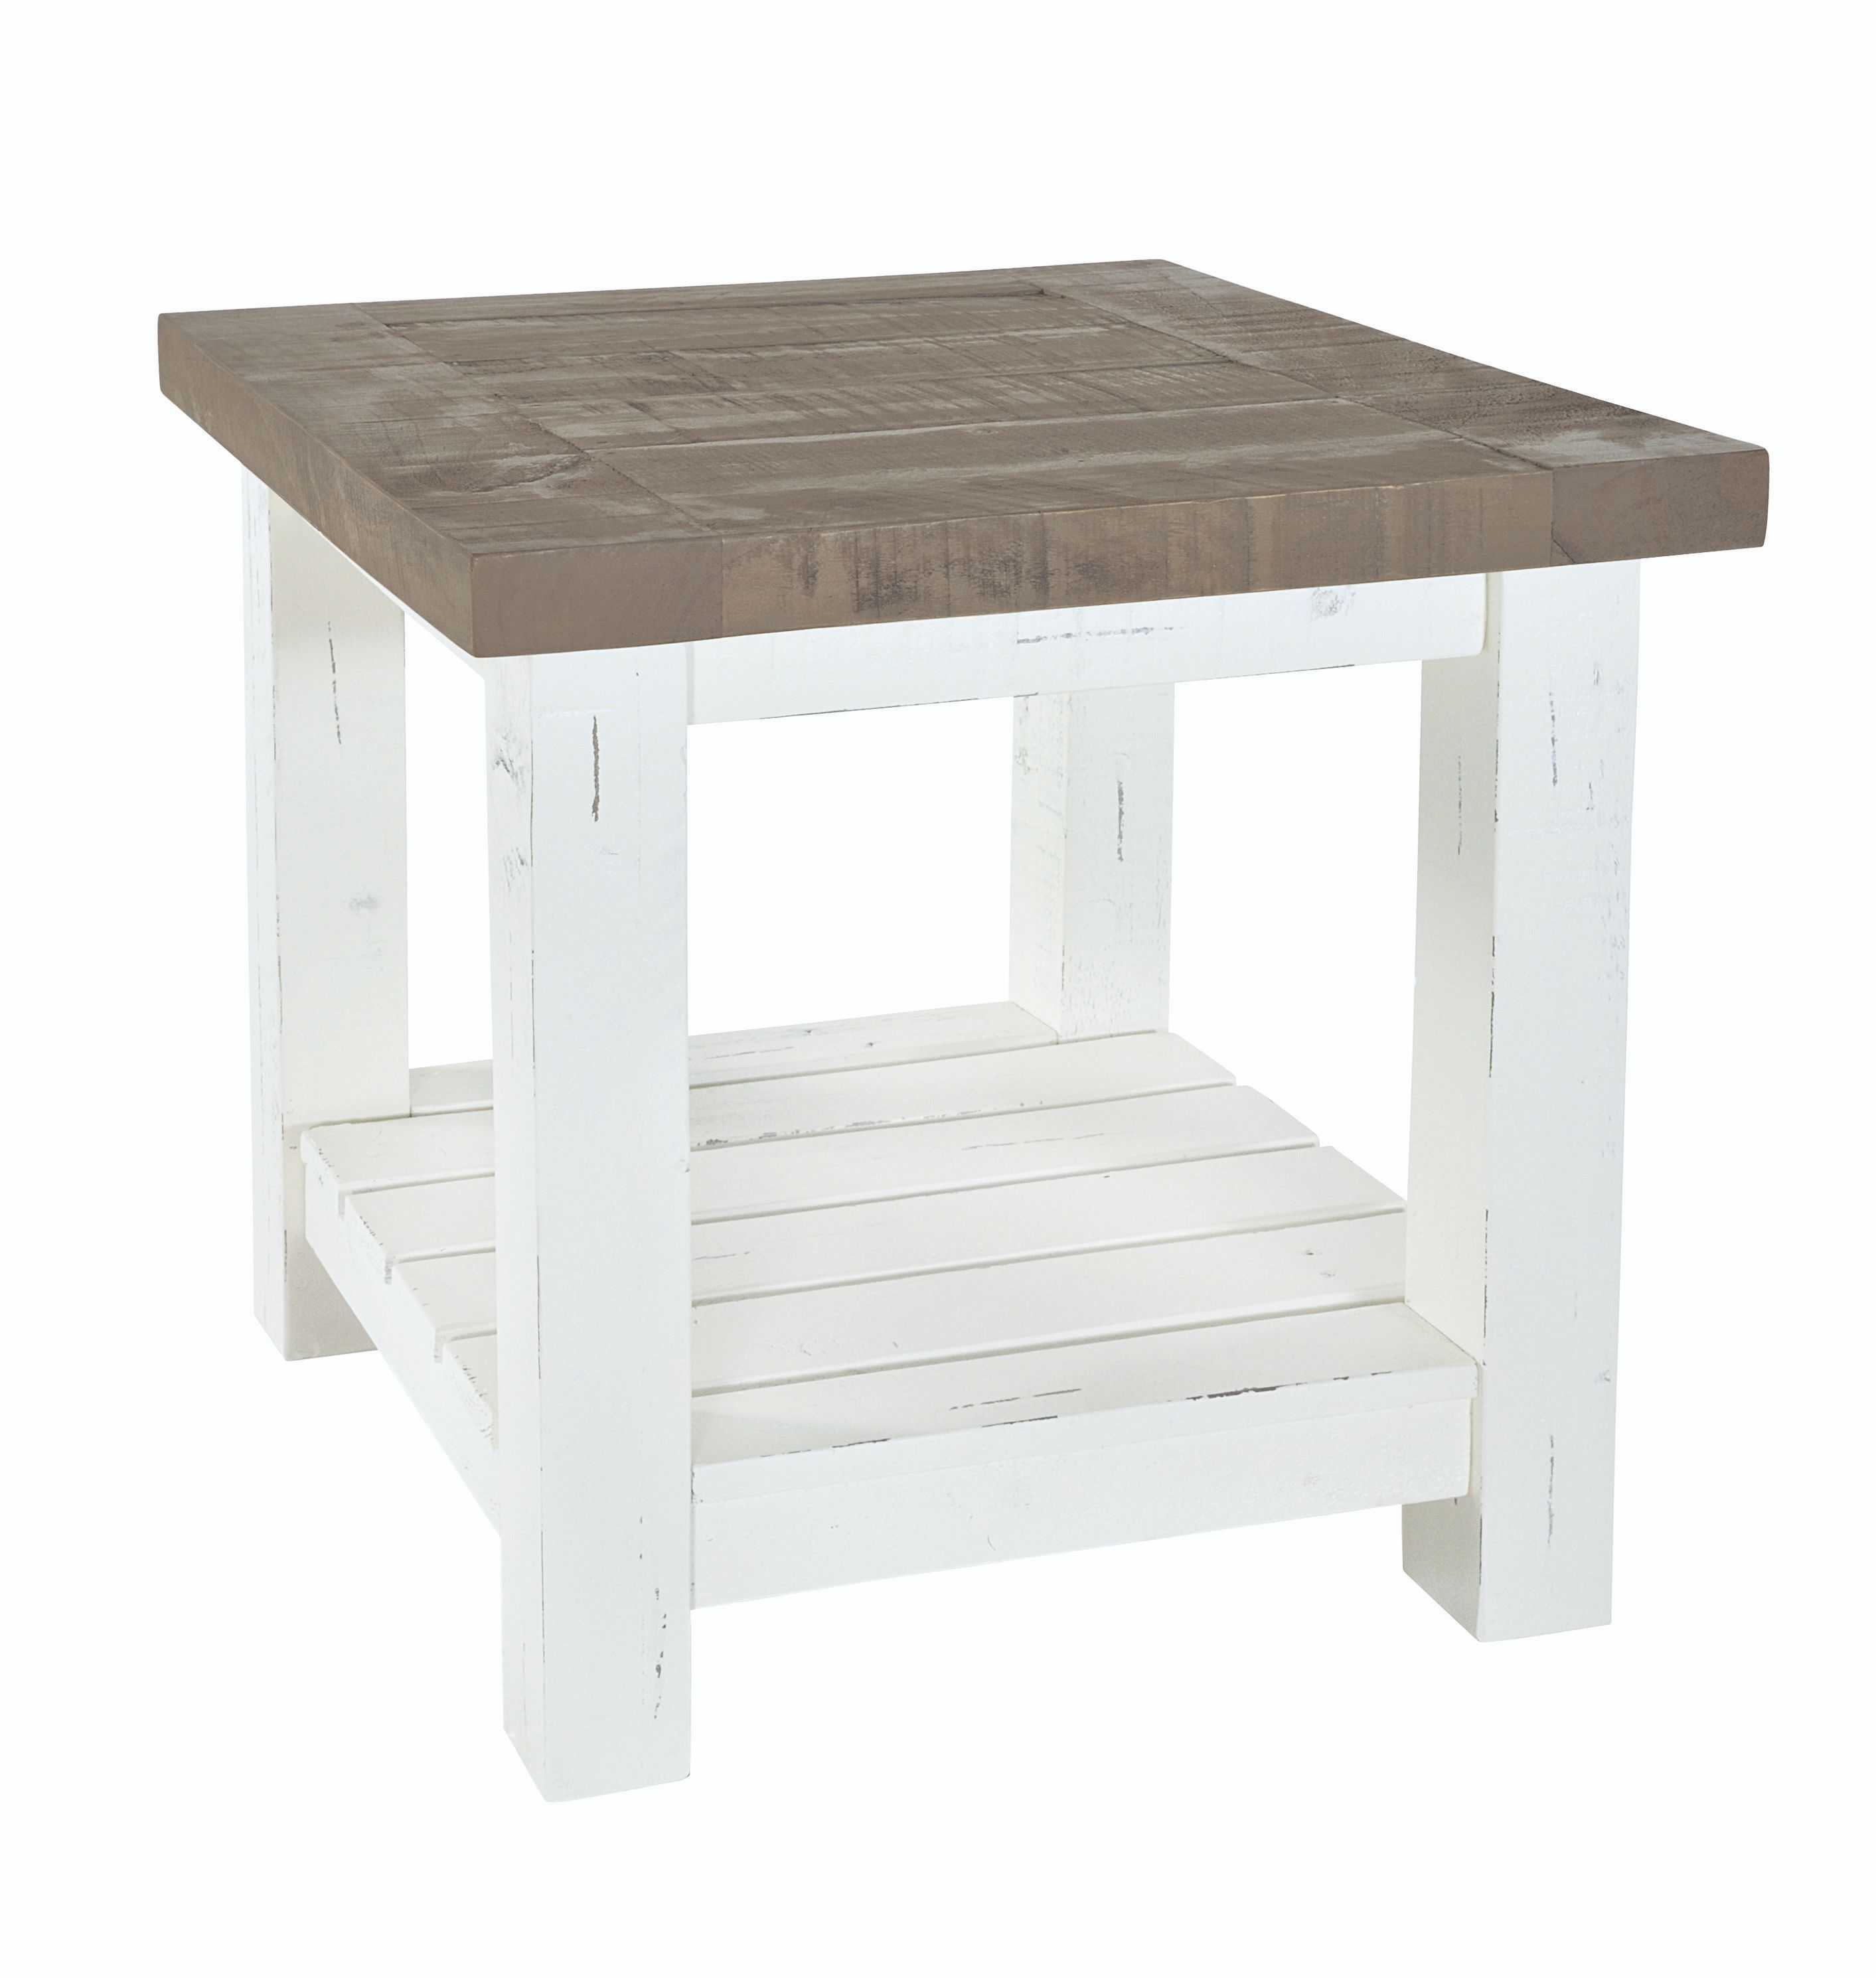 PURBECK LAMP TABLE Distressed Paint & Driftwood